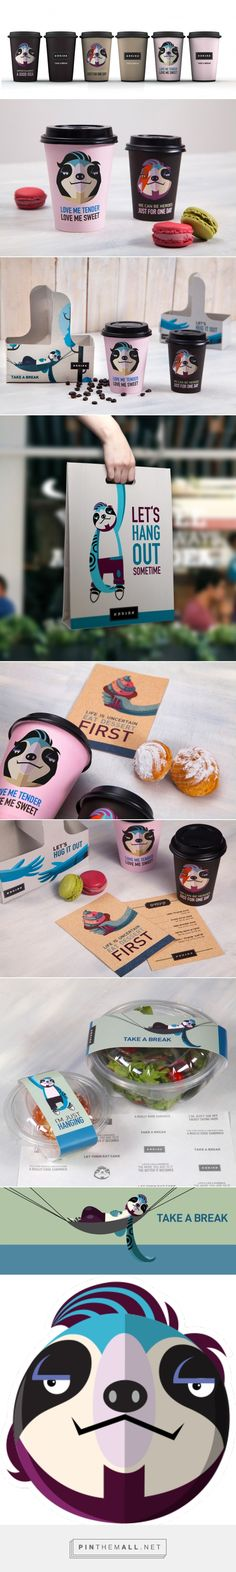 Packaging and branding for Break Coffee Shop by Plan b creative team curated by Packaging Diva PD. Easy is a common urban selfie sloth who performs as brand's main character peeping everywhere on take out boxes, posters, walls, windows, coffee cups and ev Web Design, Cafe Design, Logo Design, Cool Packaging, Brand Packaging, Packaging Design, Vintage Logo, Vintage Design, Creative Logo